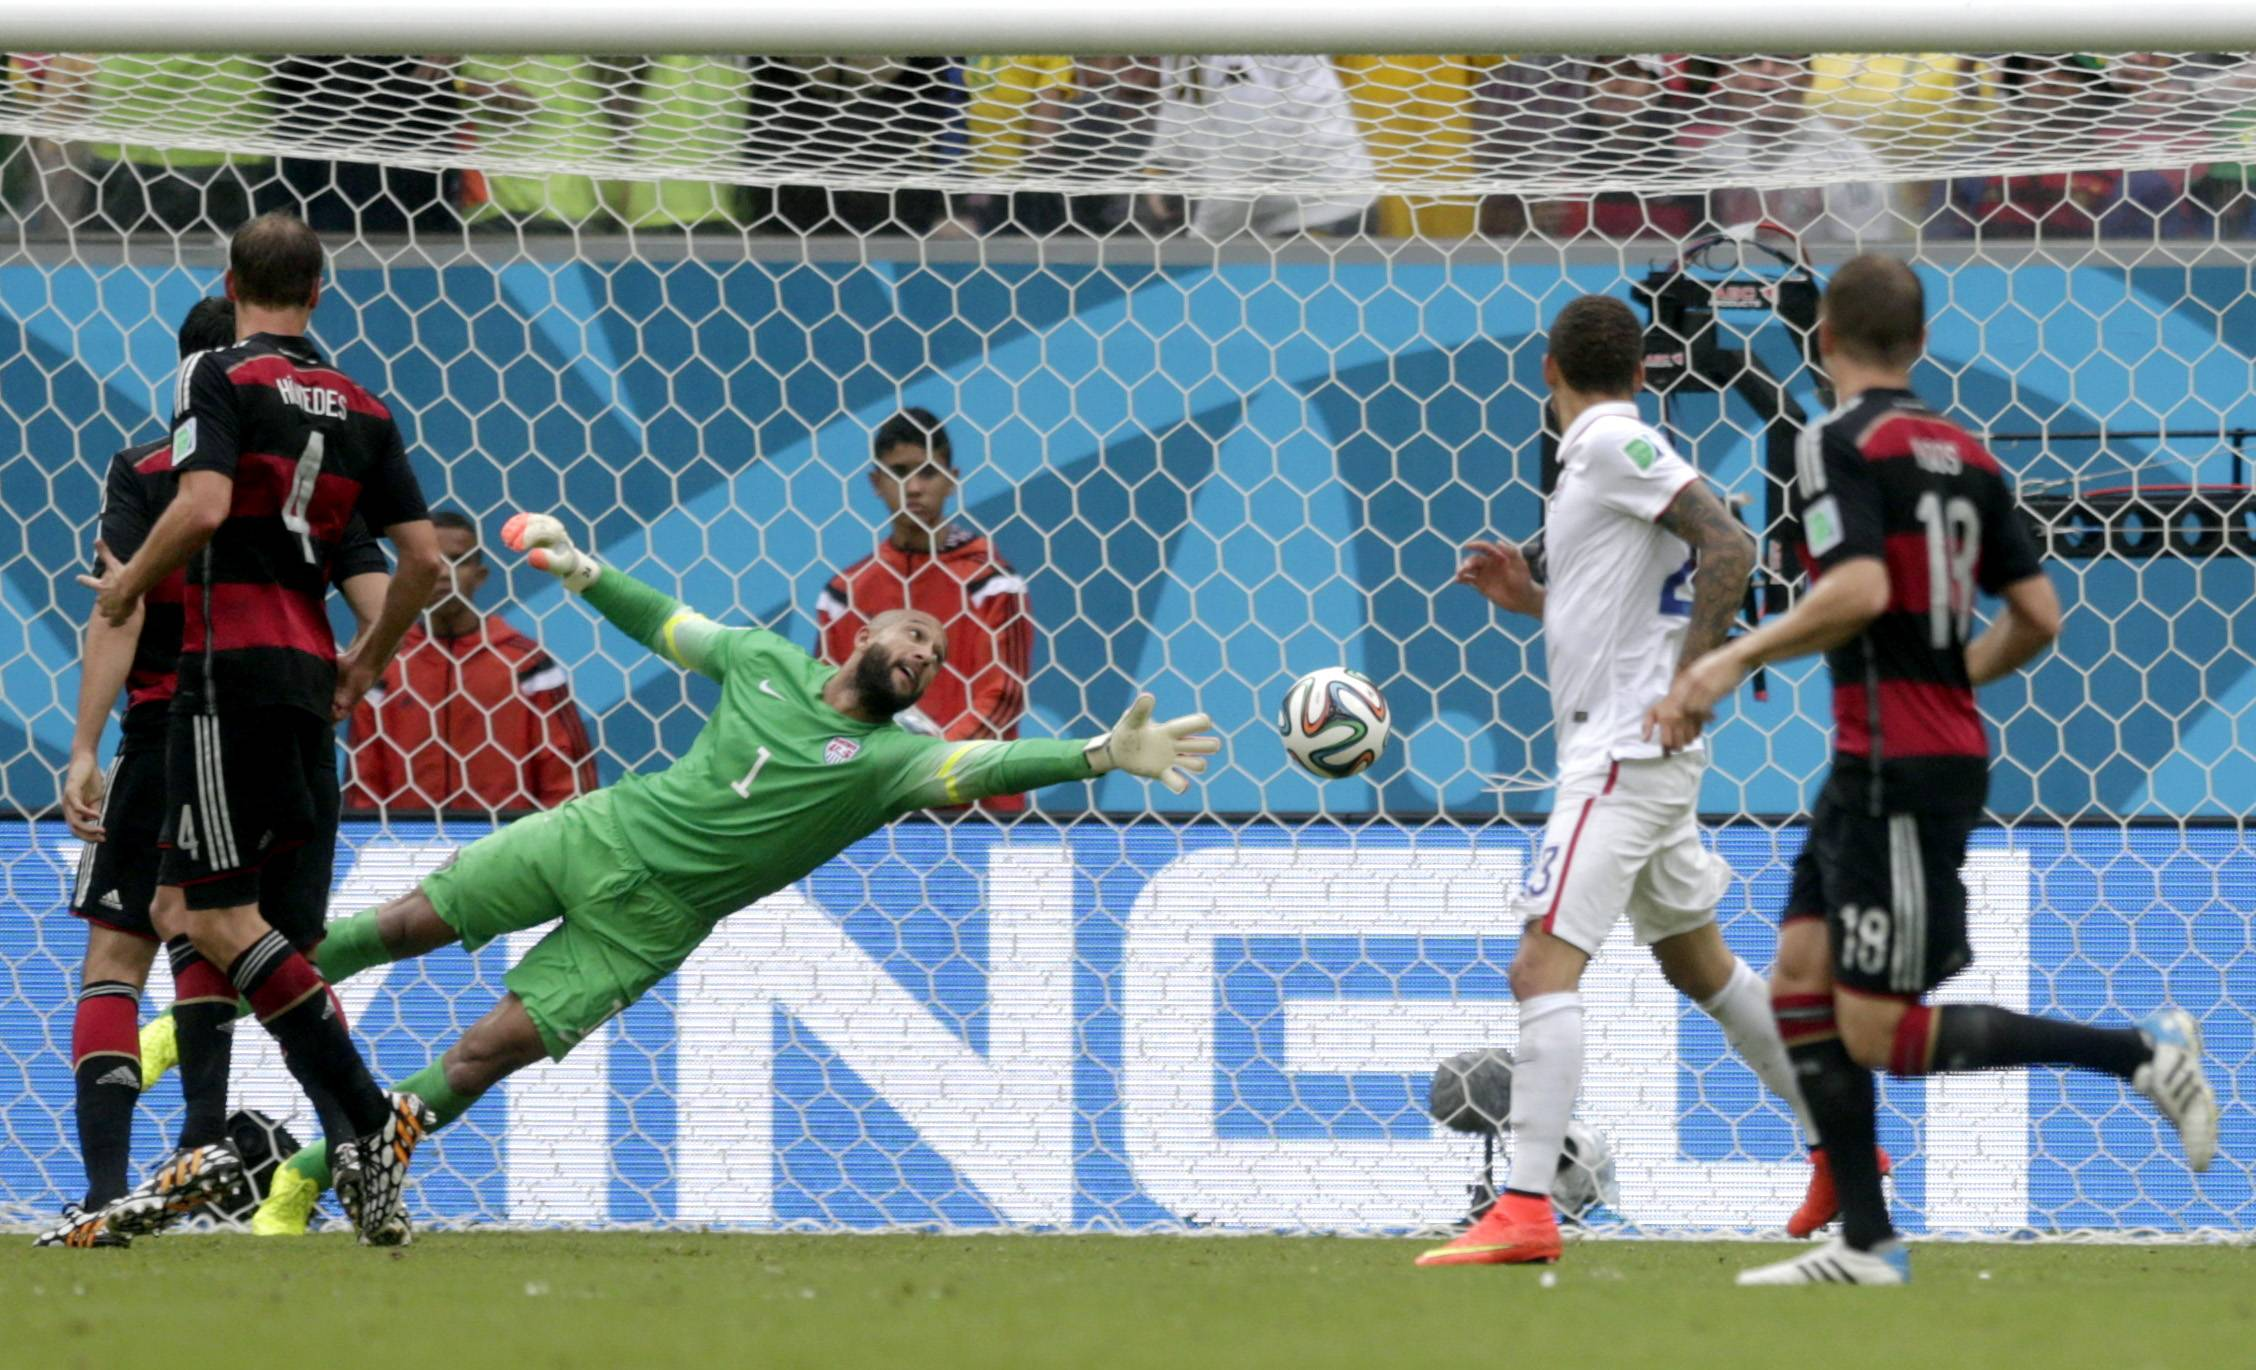 United States' goalkeeper Tim Howard cannot stop a shot by Germany's Thomas Mueller to score his side's first goal during the group G World Cup soccer match between the United States and Germany at the Arena Pernambuco in Recife, Brazil, Thursday, June 26, 2014.